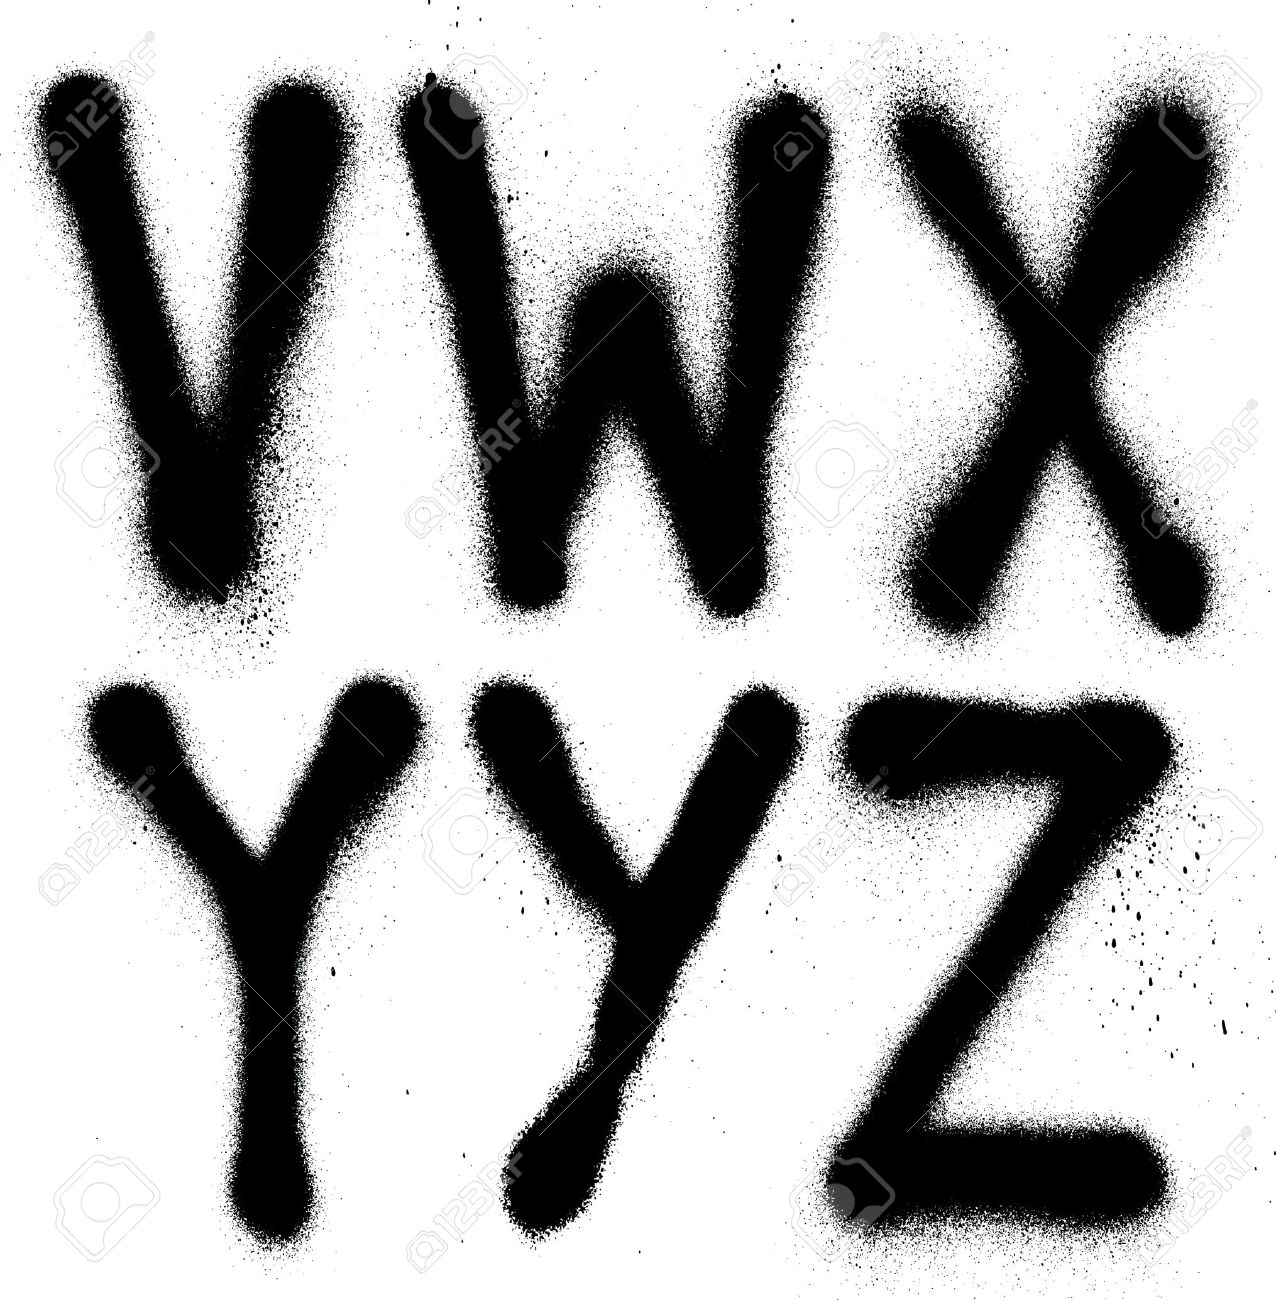 Detailed graffiti spray paint font type part 4 vector alphabet stock vector 23900306